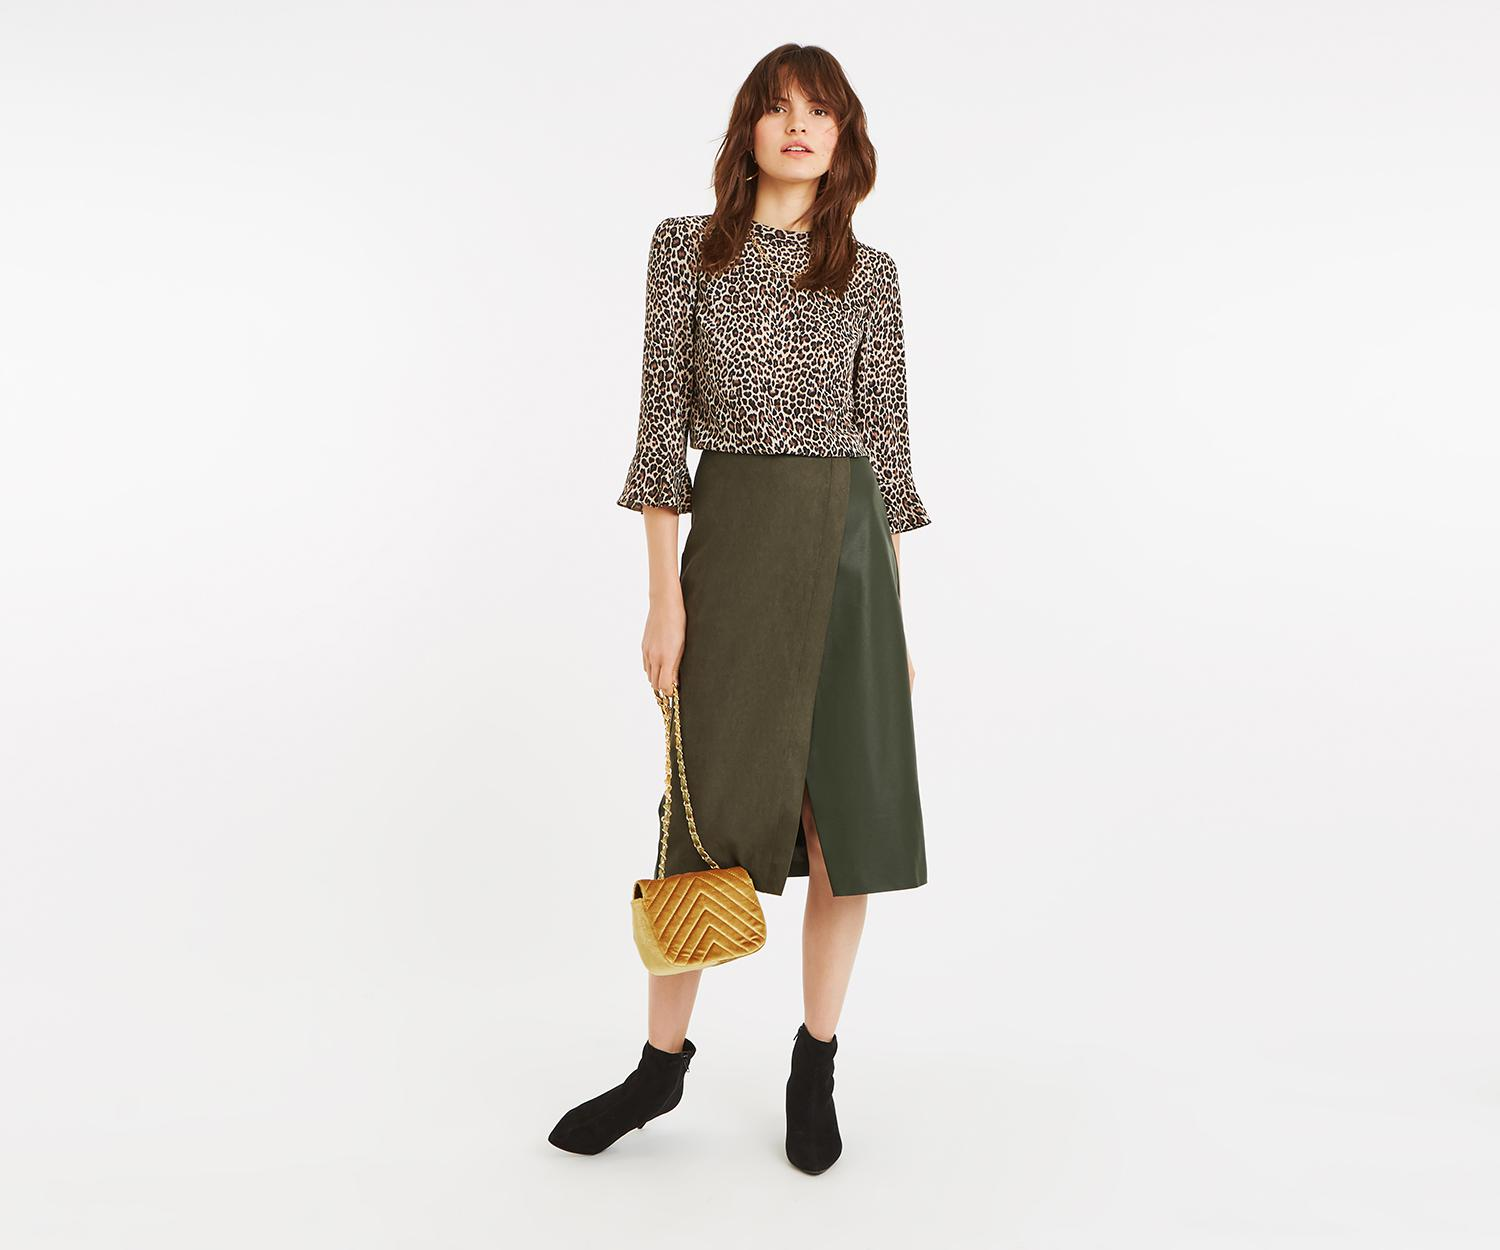 21543e68a5 Oasis - Green Faux Suede Midi Skirt - Lyst. View fullscreen